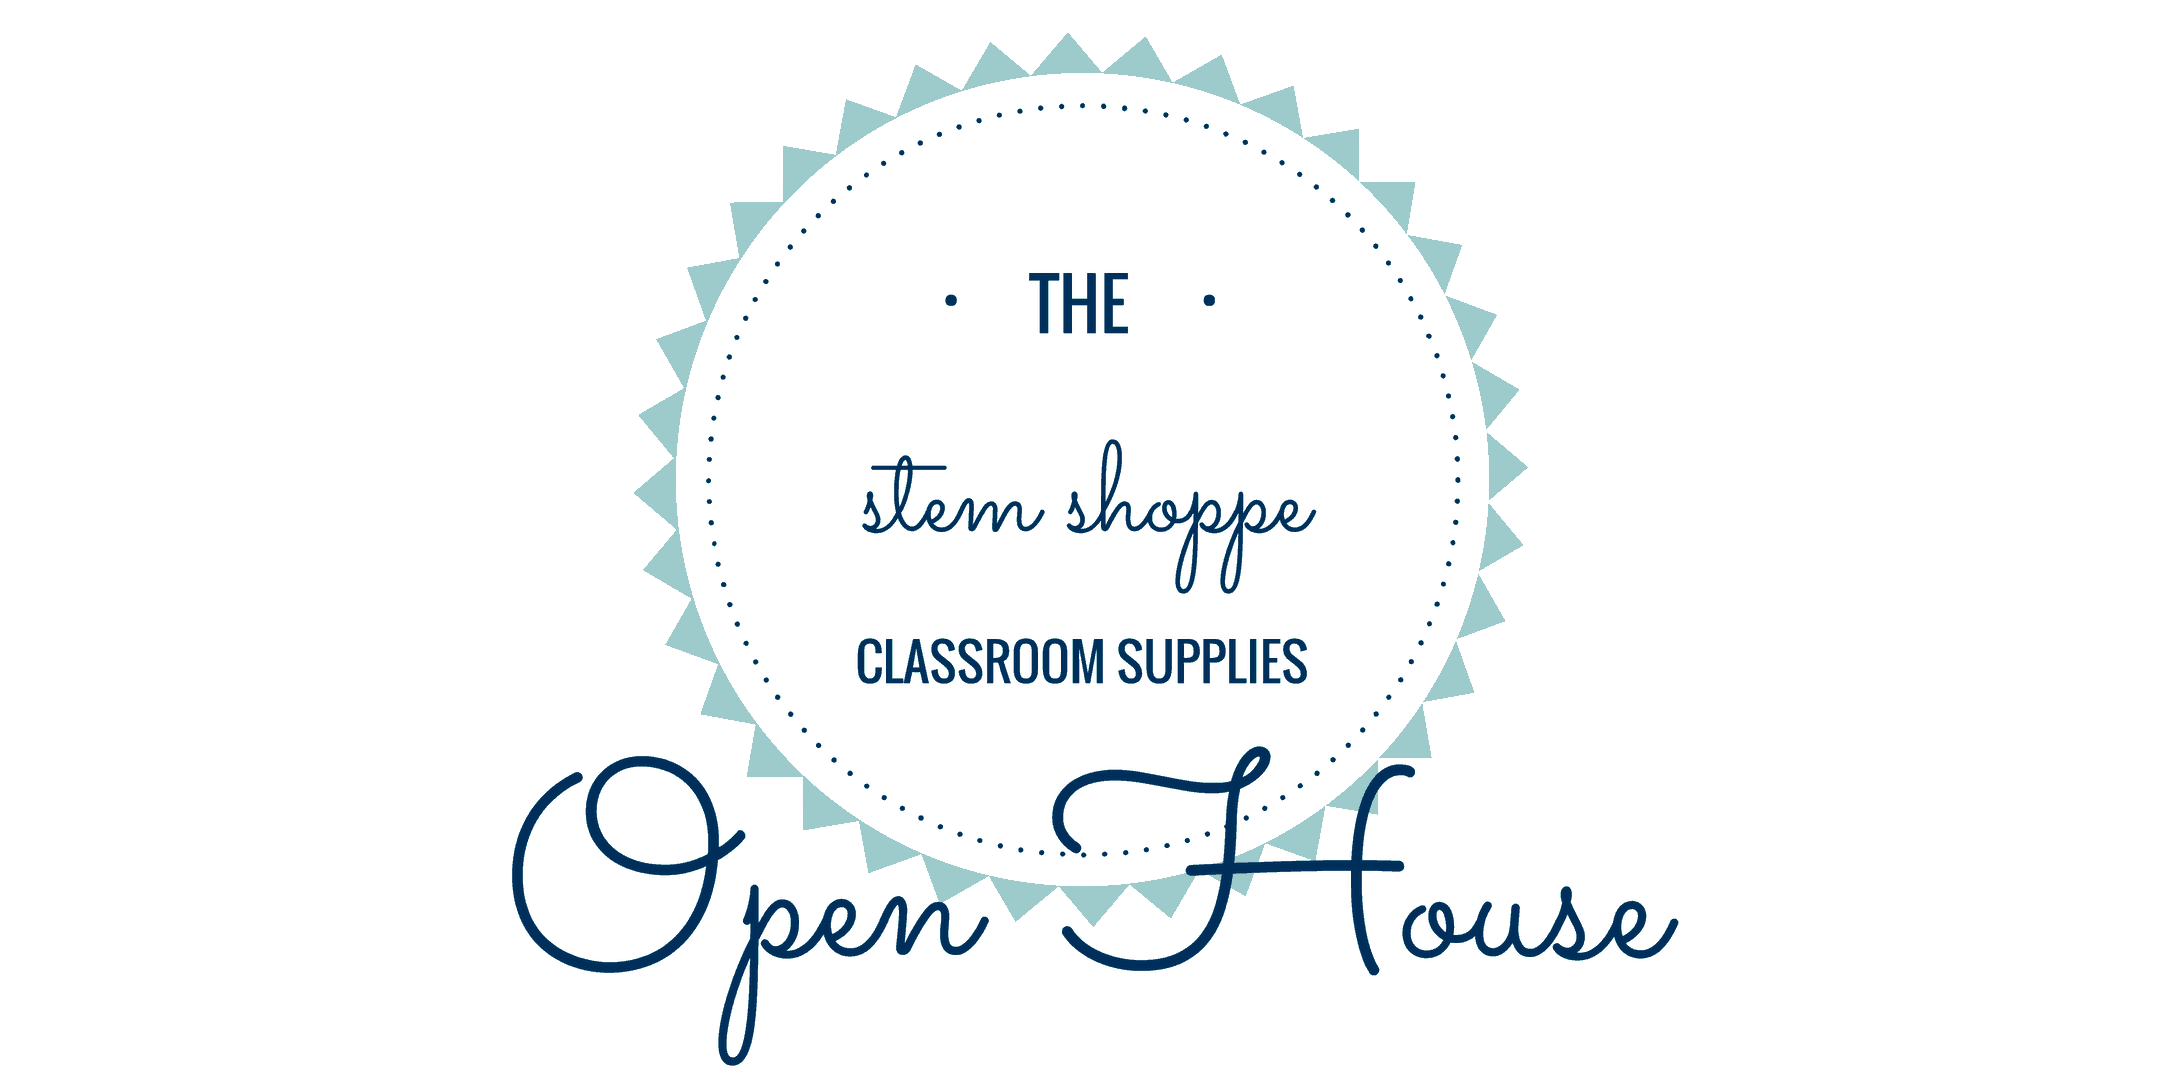 STEM Shoppe classroom supplies Open House